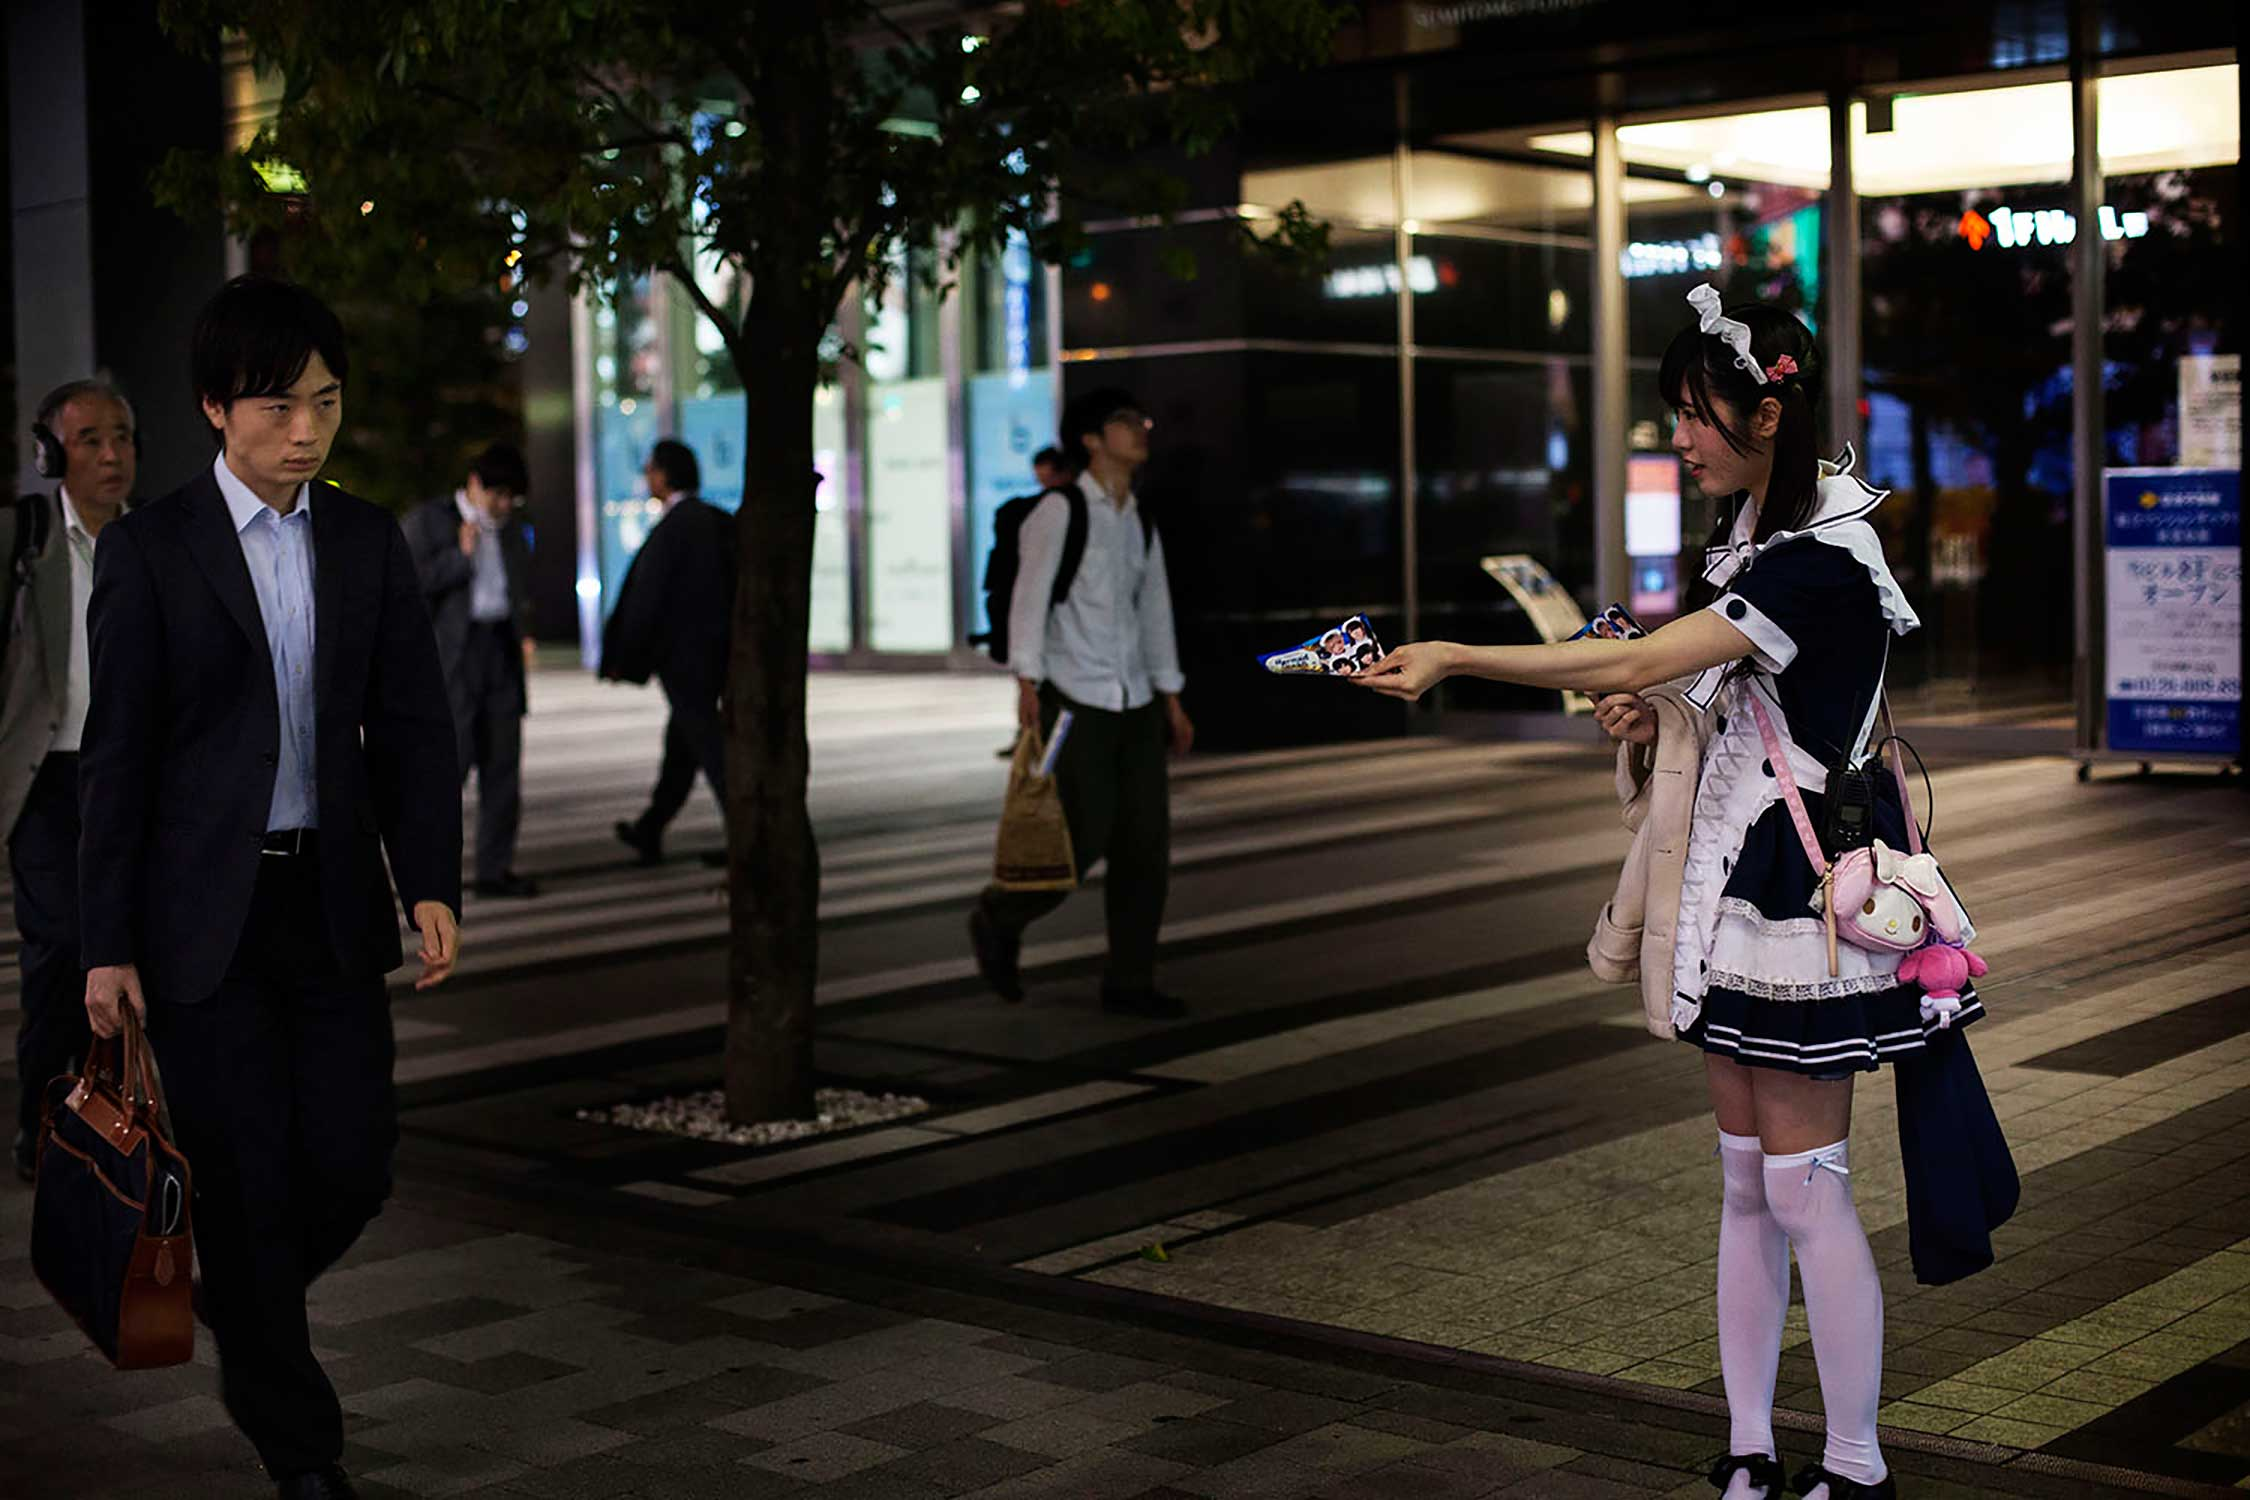 A waitress dressed as a cosplayer tries to hand out a flyer to a passer-by on a street in Akihabara, a district famous for its electronic shops and Otome cafés in Tokyo.